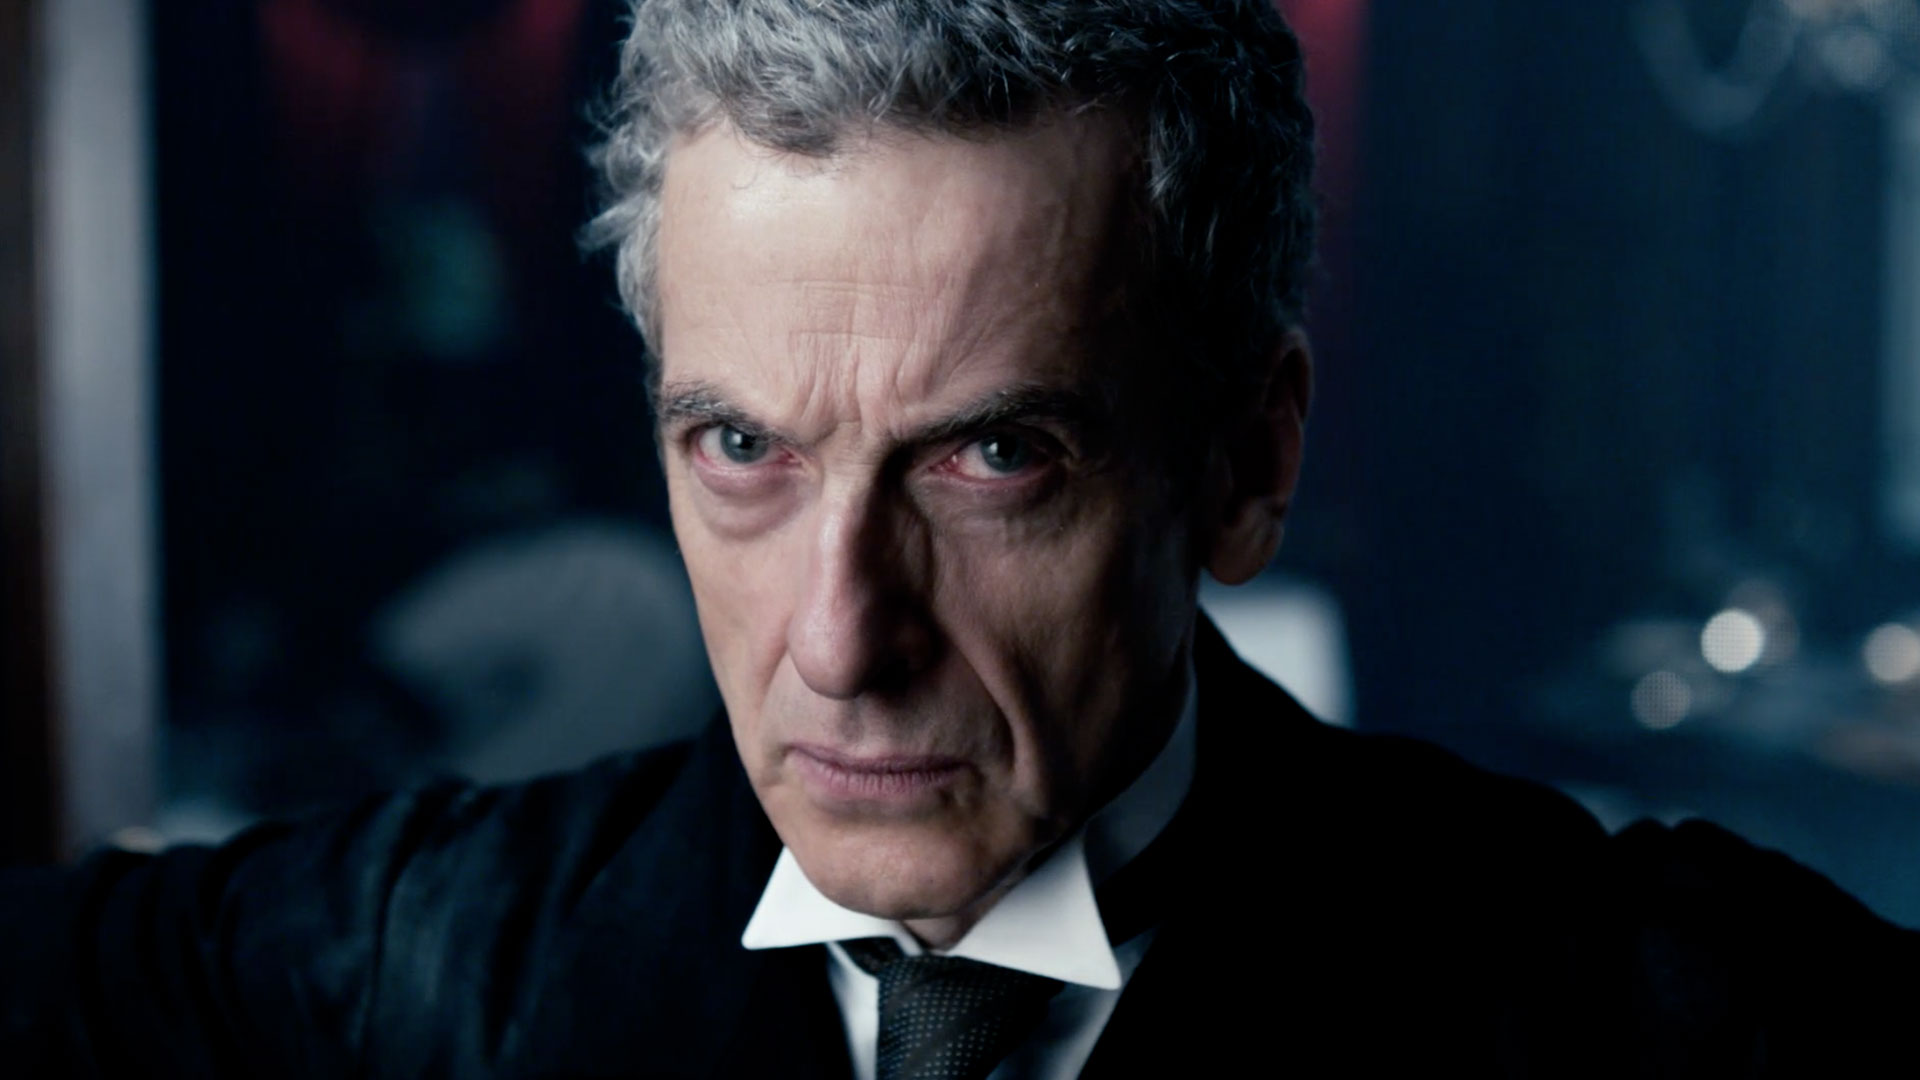 Video – New to <em>Doctor Who</em>? Get an Introduction to the Series in Less Than Two Minutes